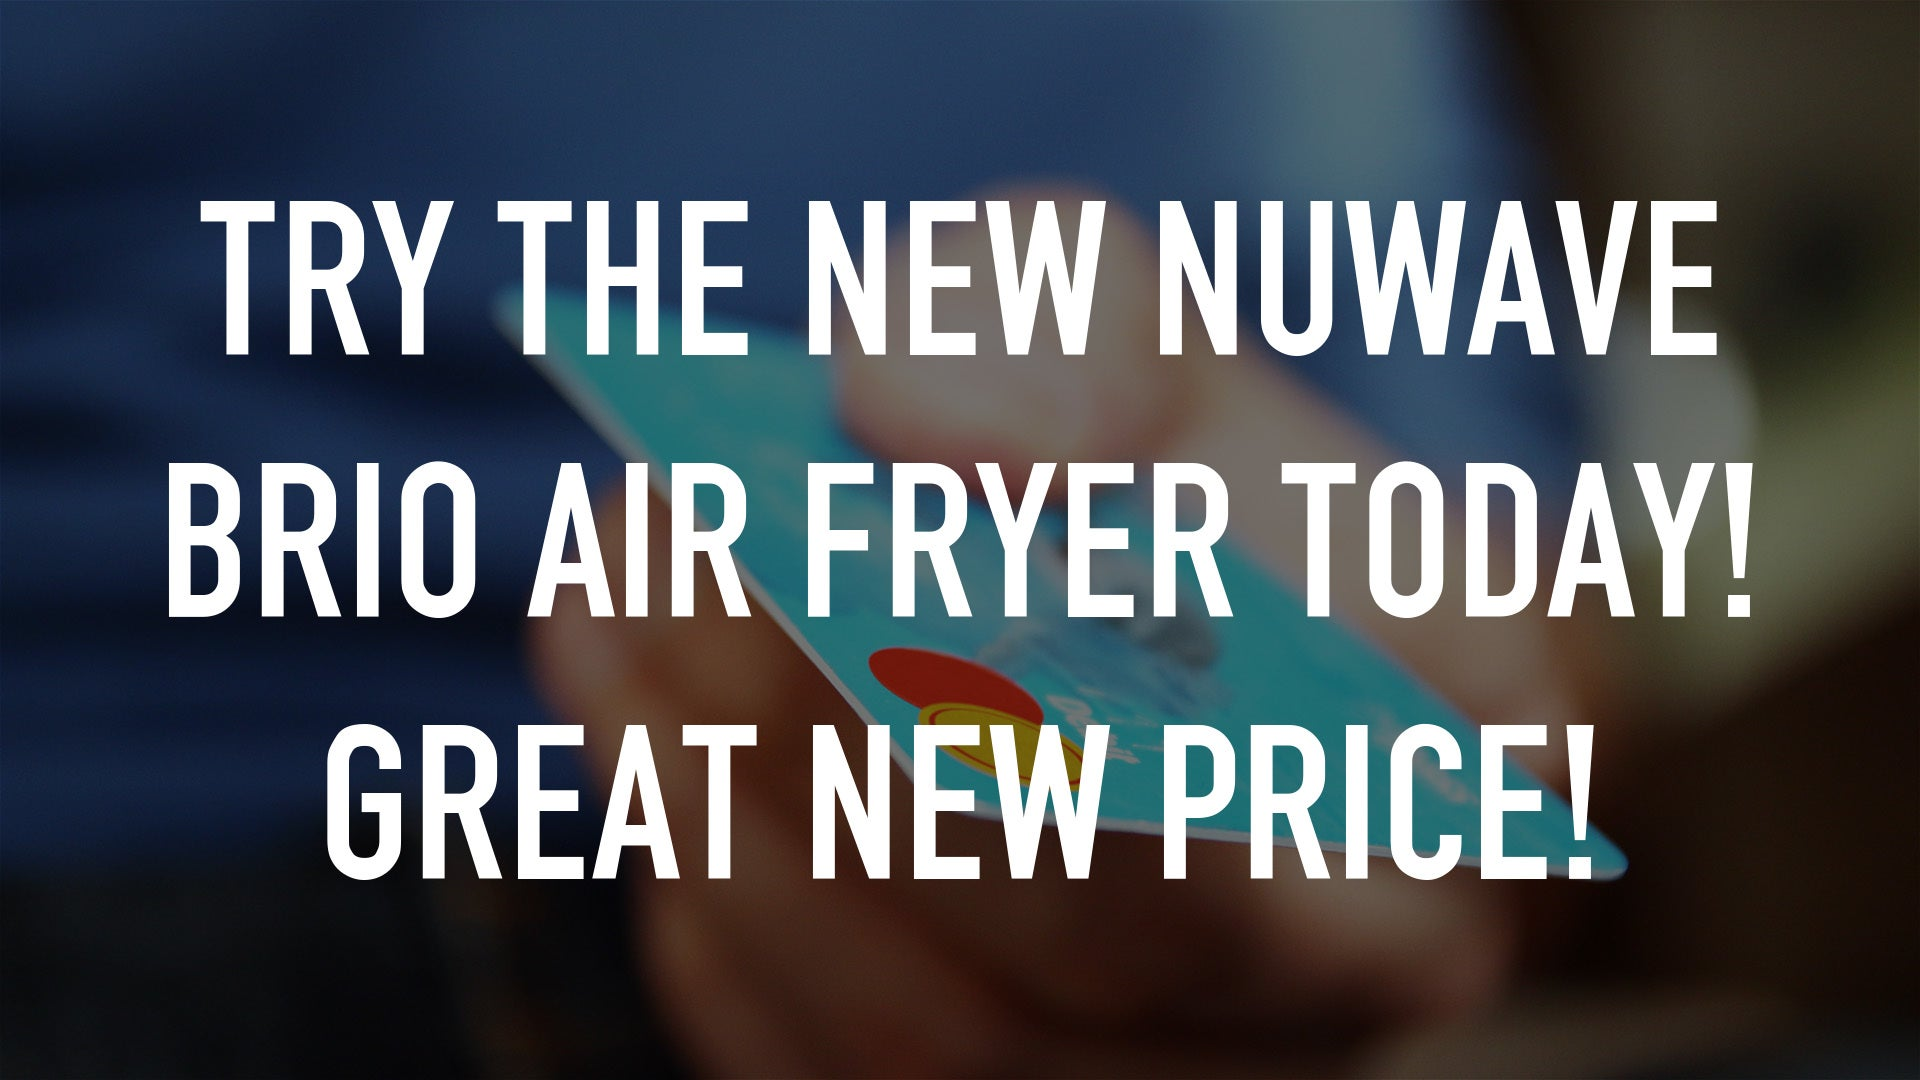 Try the New NuWave Brio Air Fryer Today! Great New Price!